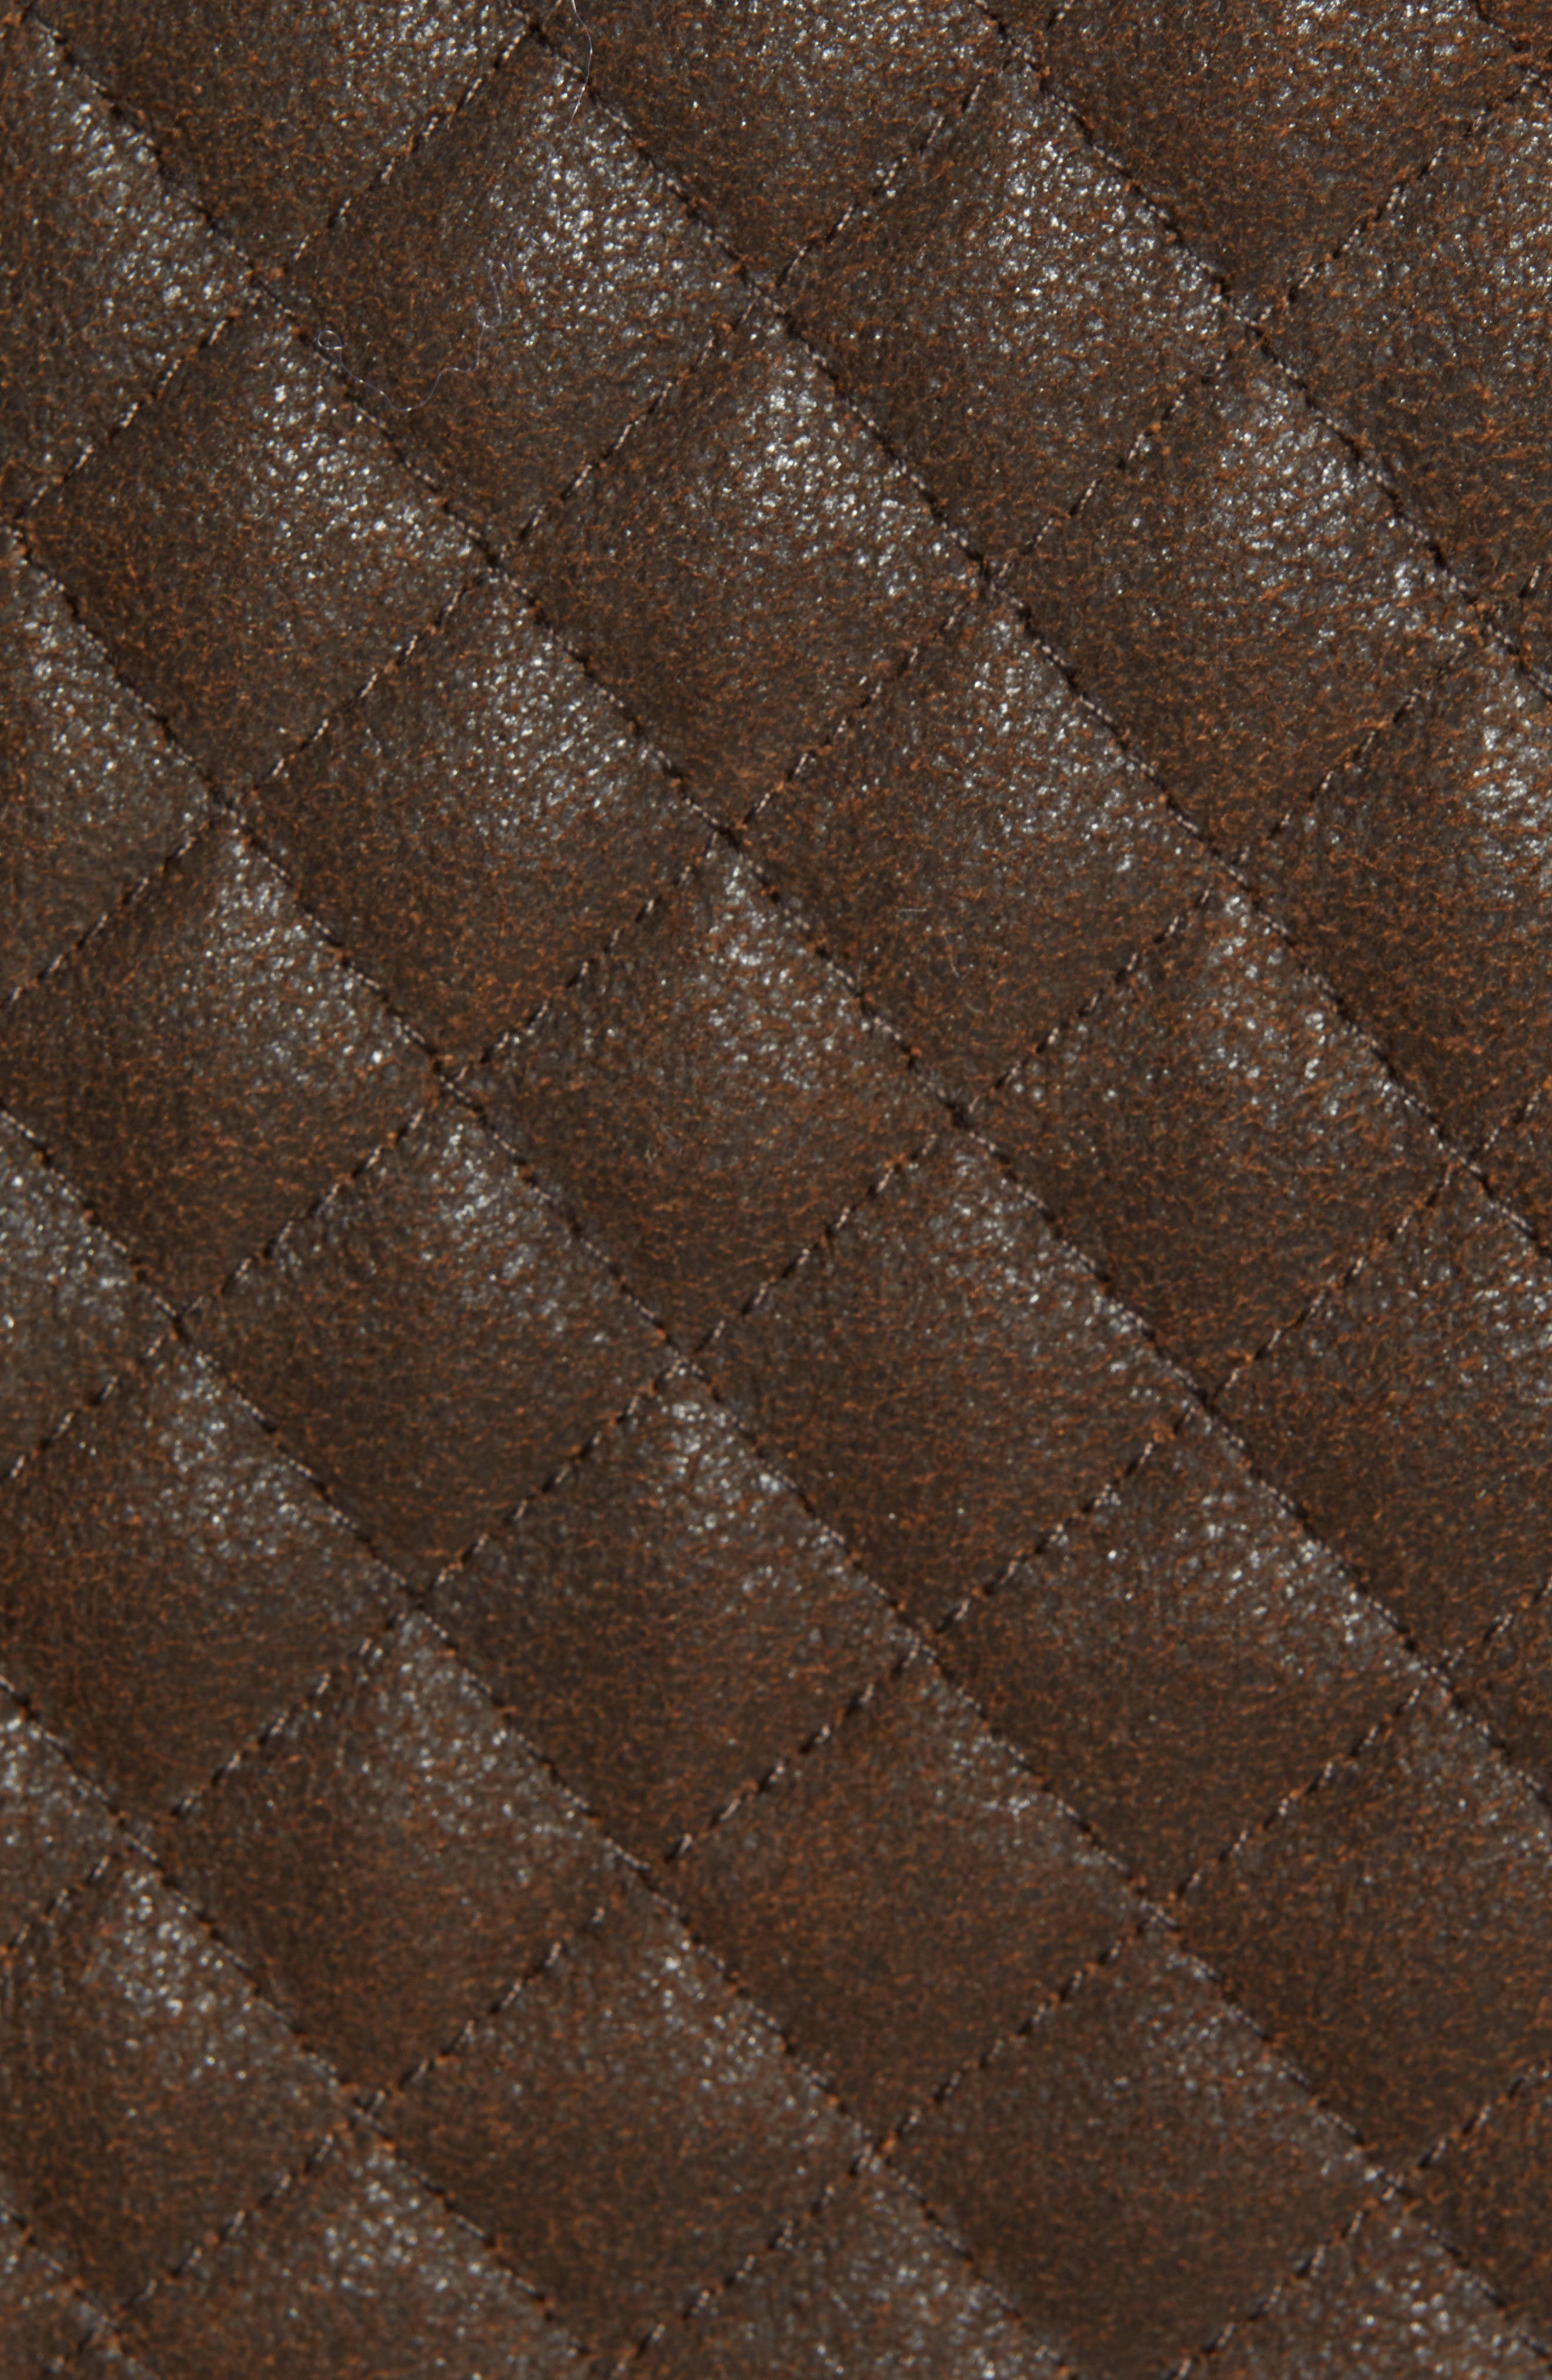 Quilted Leather & Wool Vest,                             Alternate thumbnail 7, color,                             201